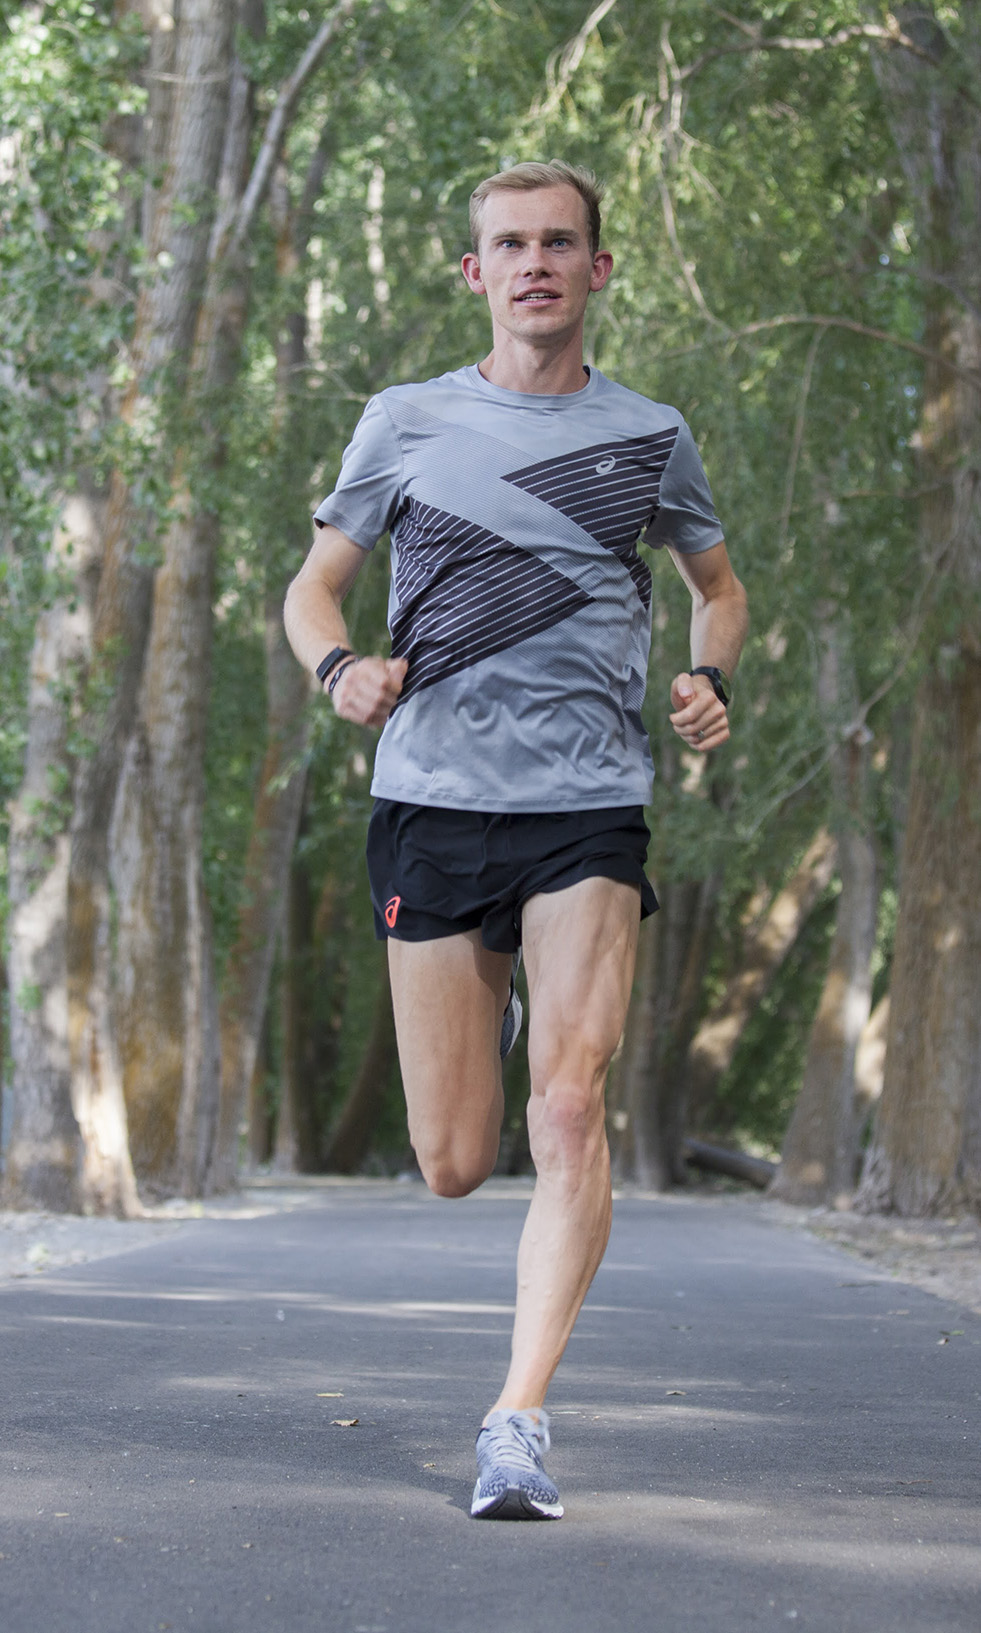 Clayton Young Professional Runner